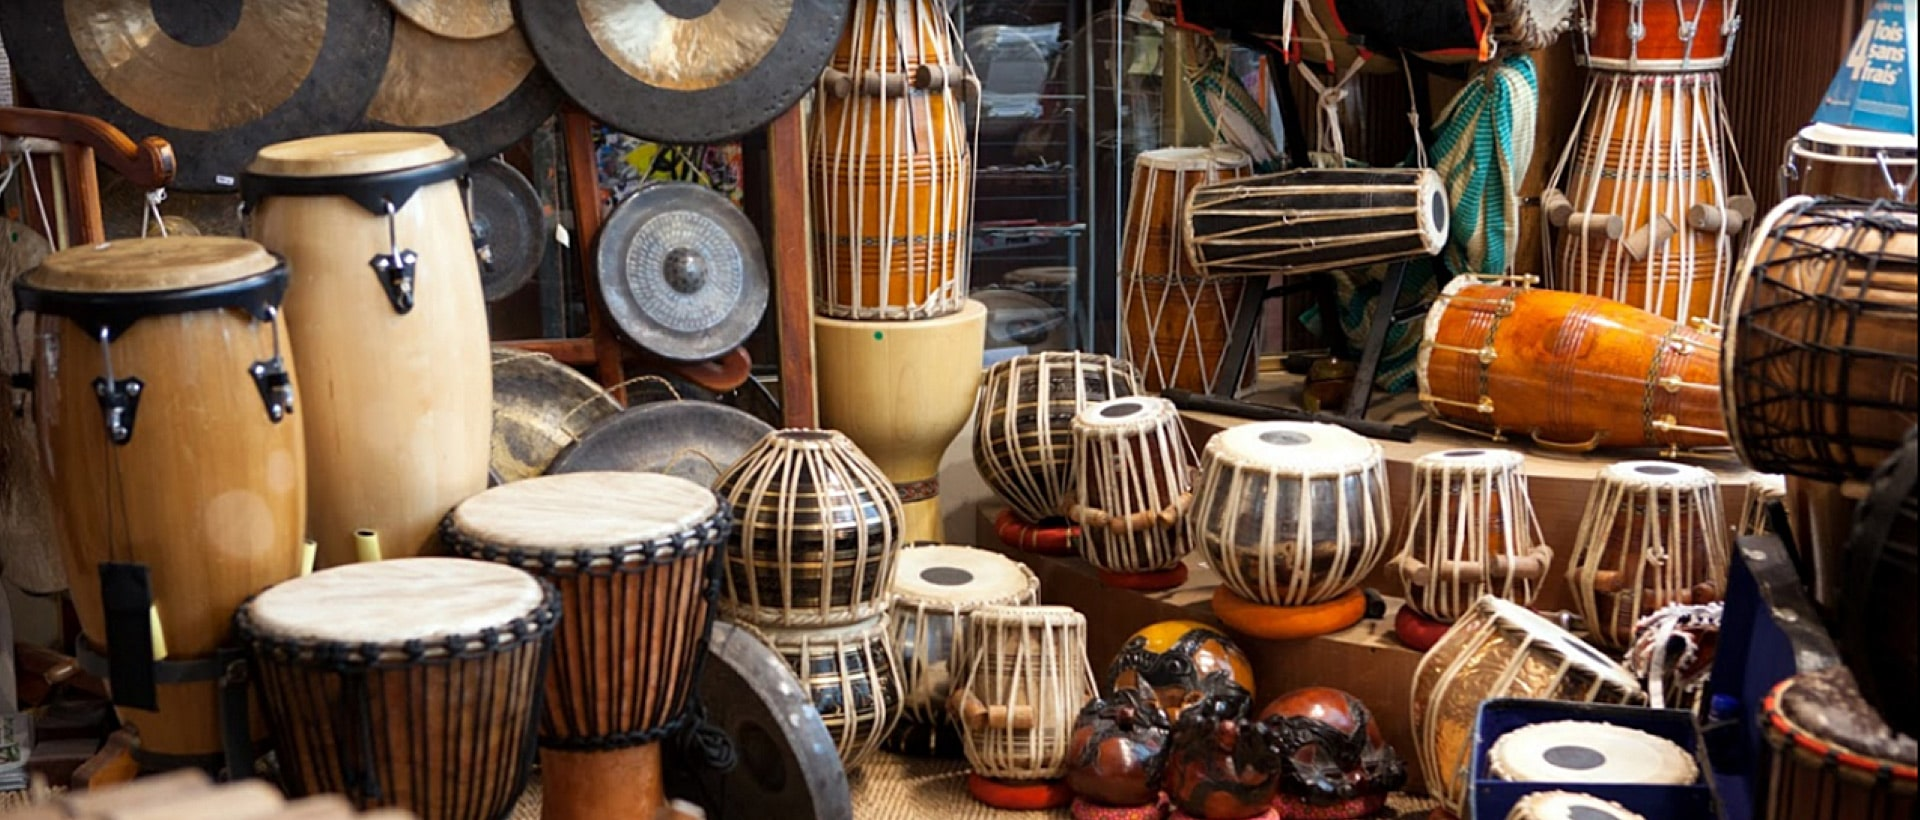 Music instruments and intuitive percussions